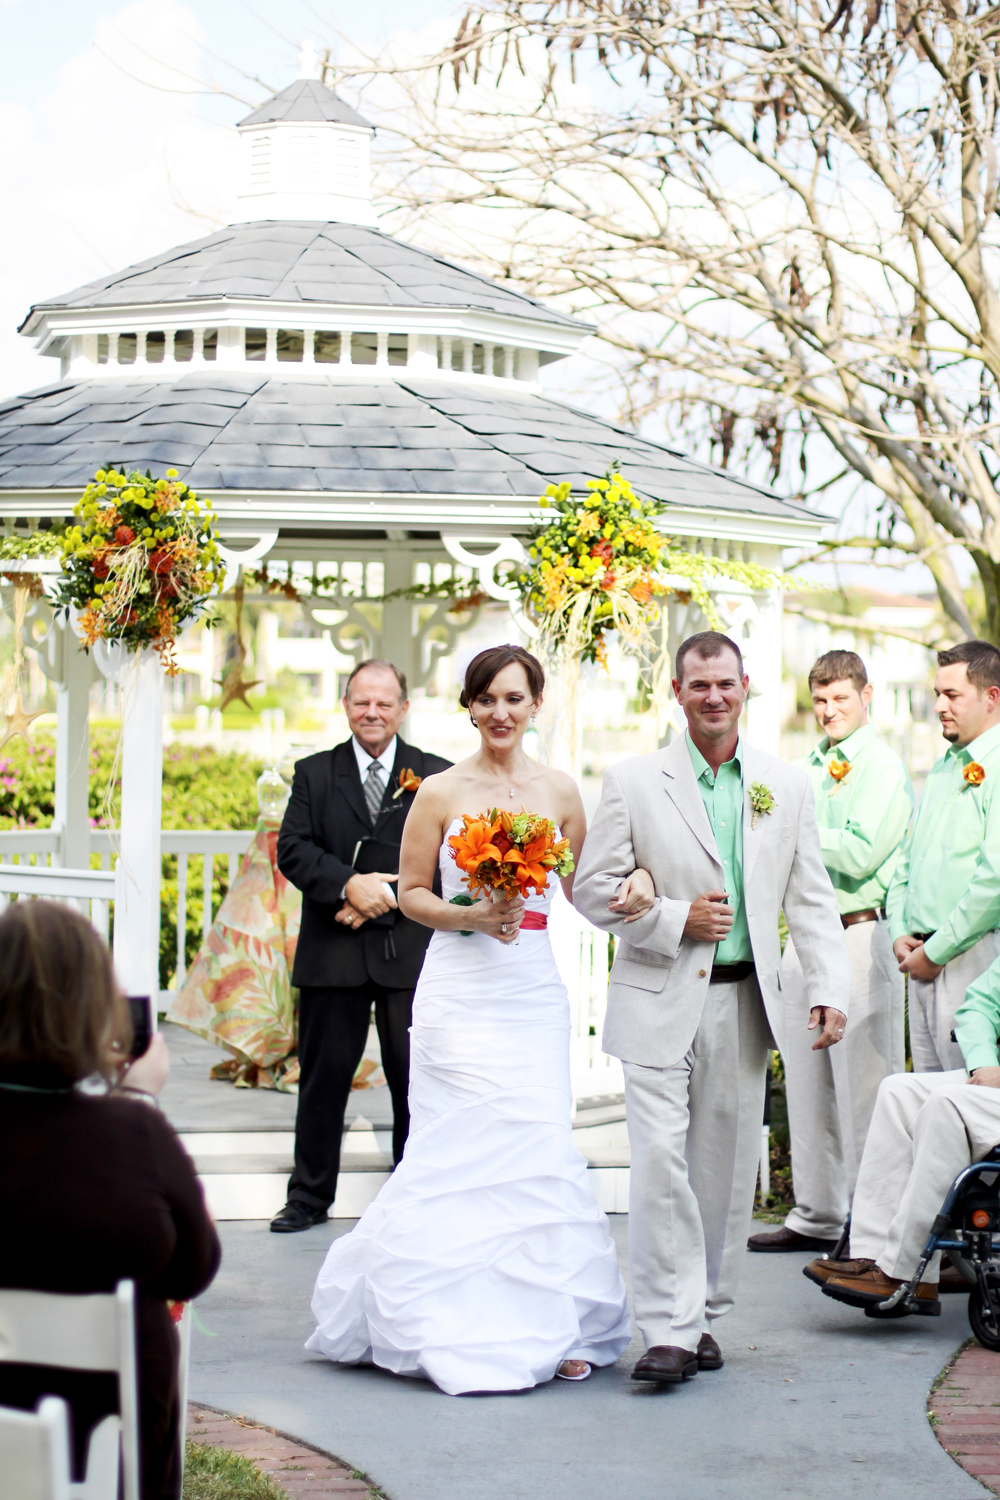 The gazebo was adorned with bright flora, raffia, and starfish